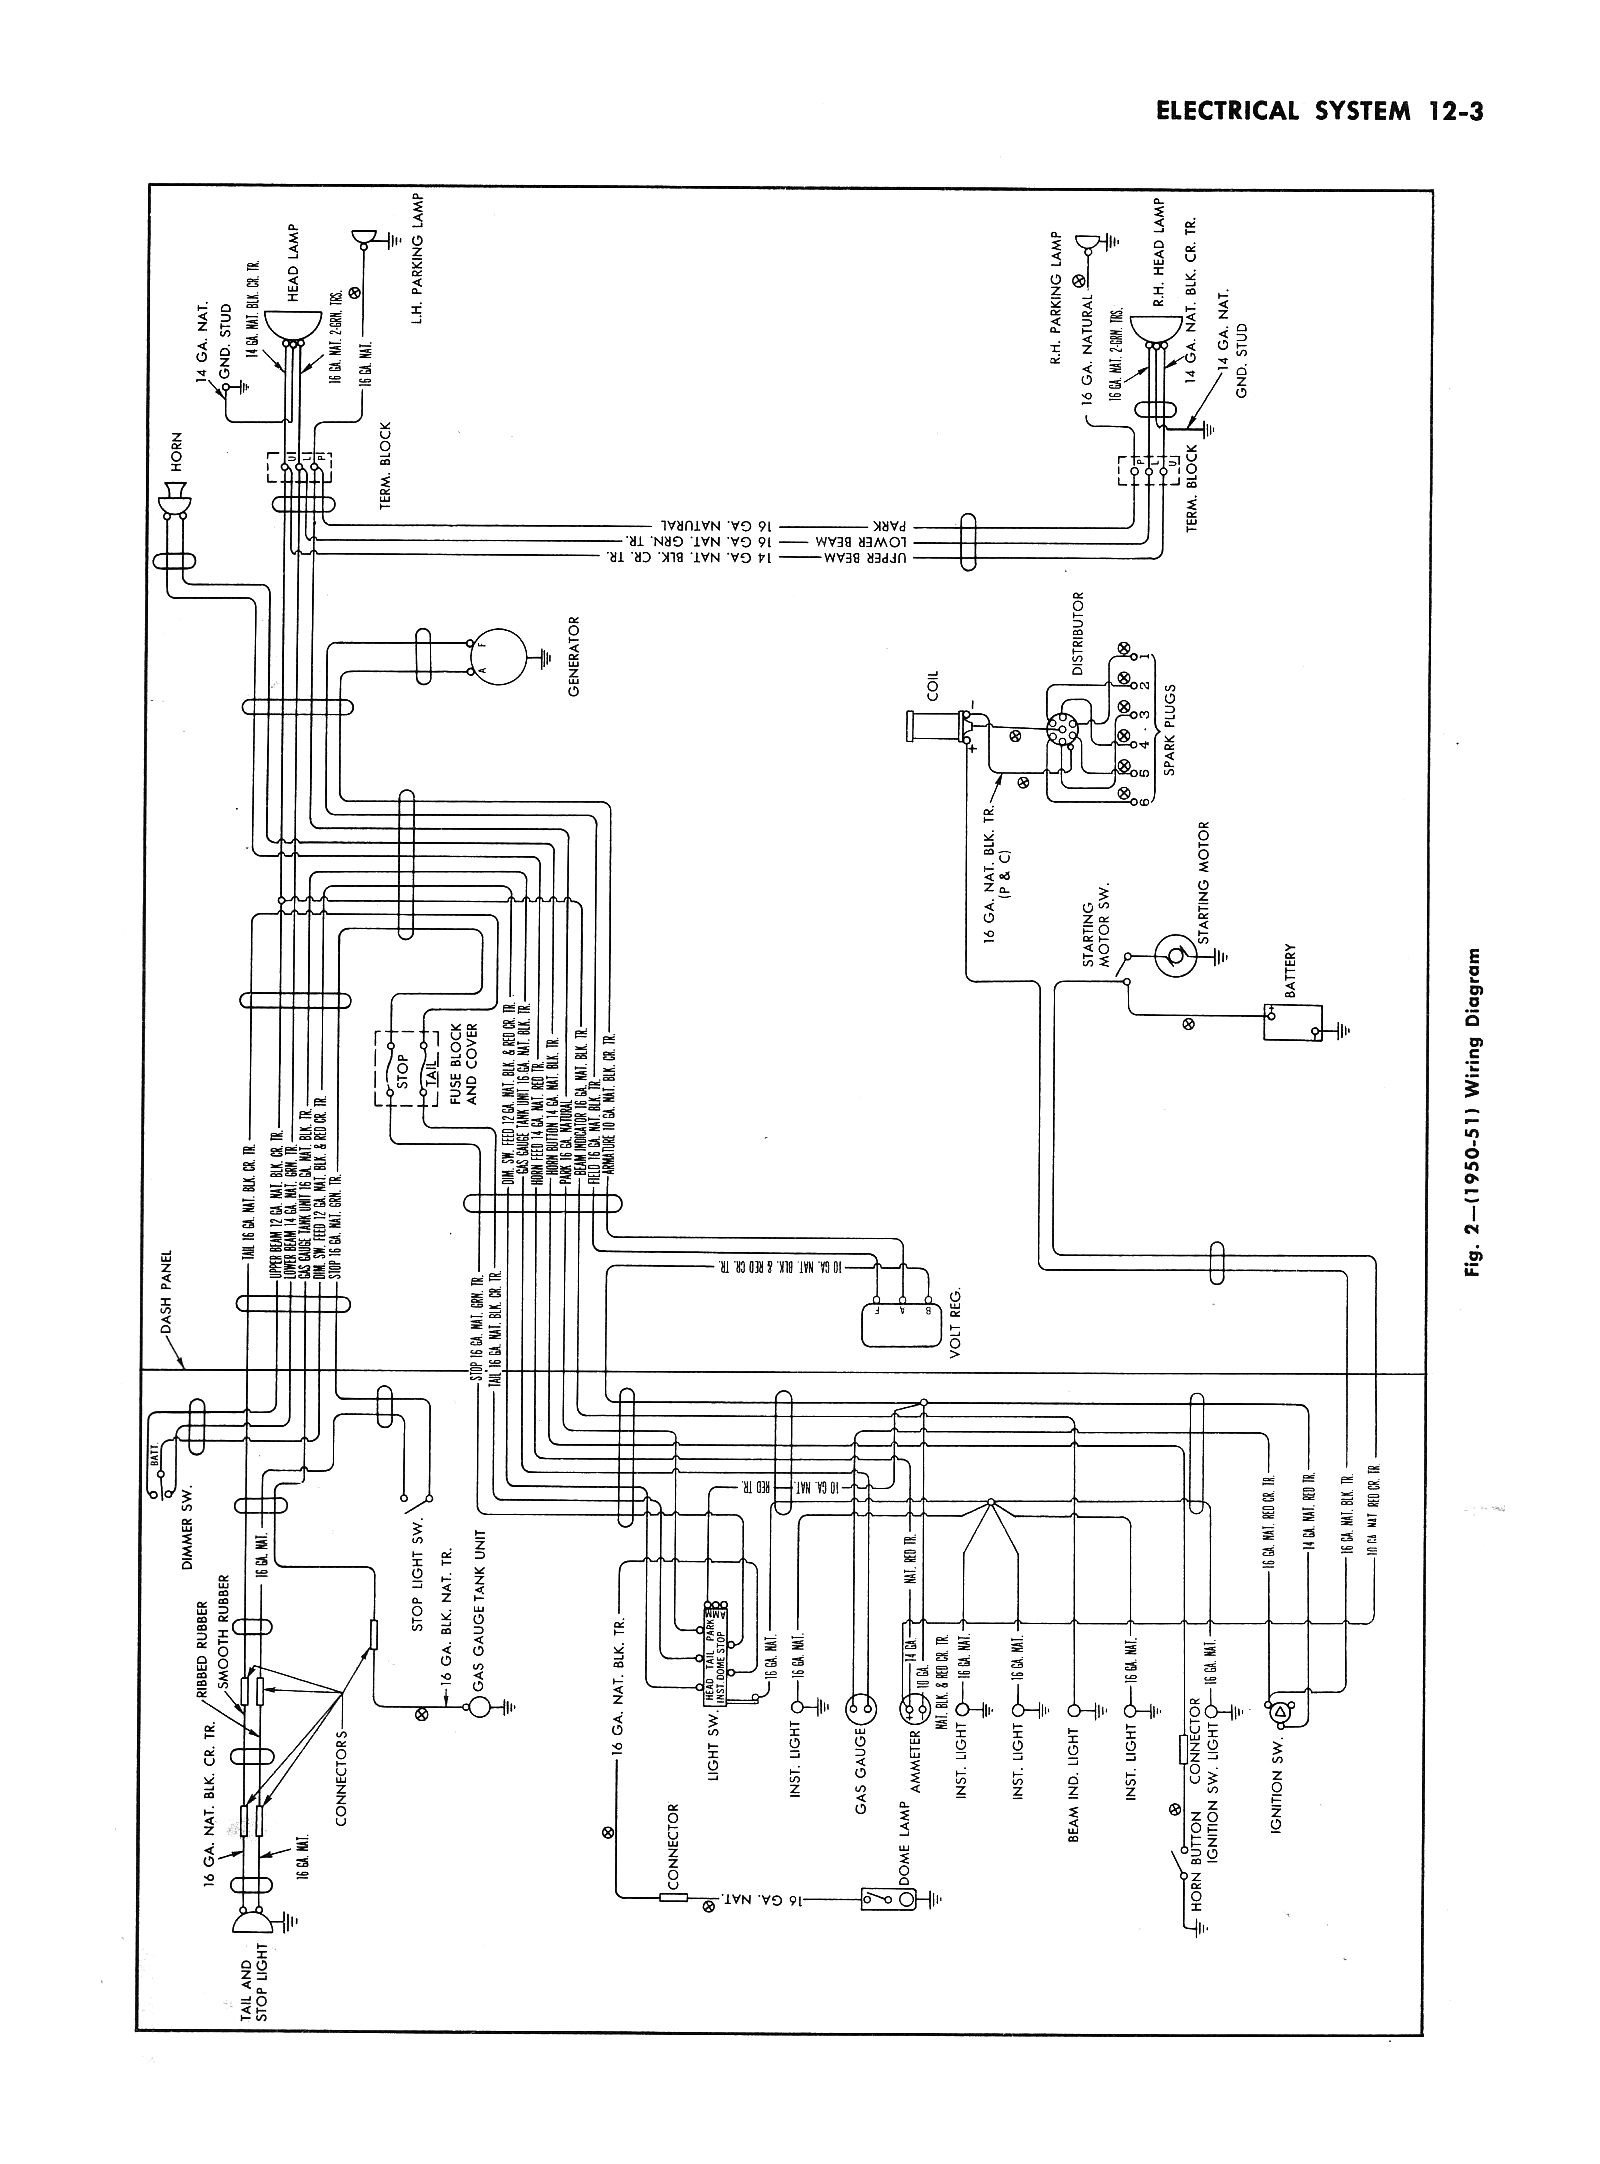 wiring and schematic diagrams gw schwabenschamanen de \u2022 1997 plymouth voyager wiring-diagram chevy wiring diagrams rh chevy oldcarmanualproject com wiring layout and schematic diagram